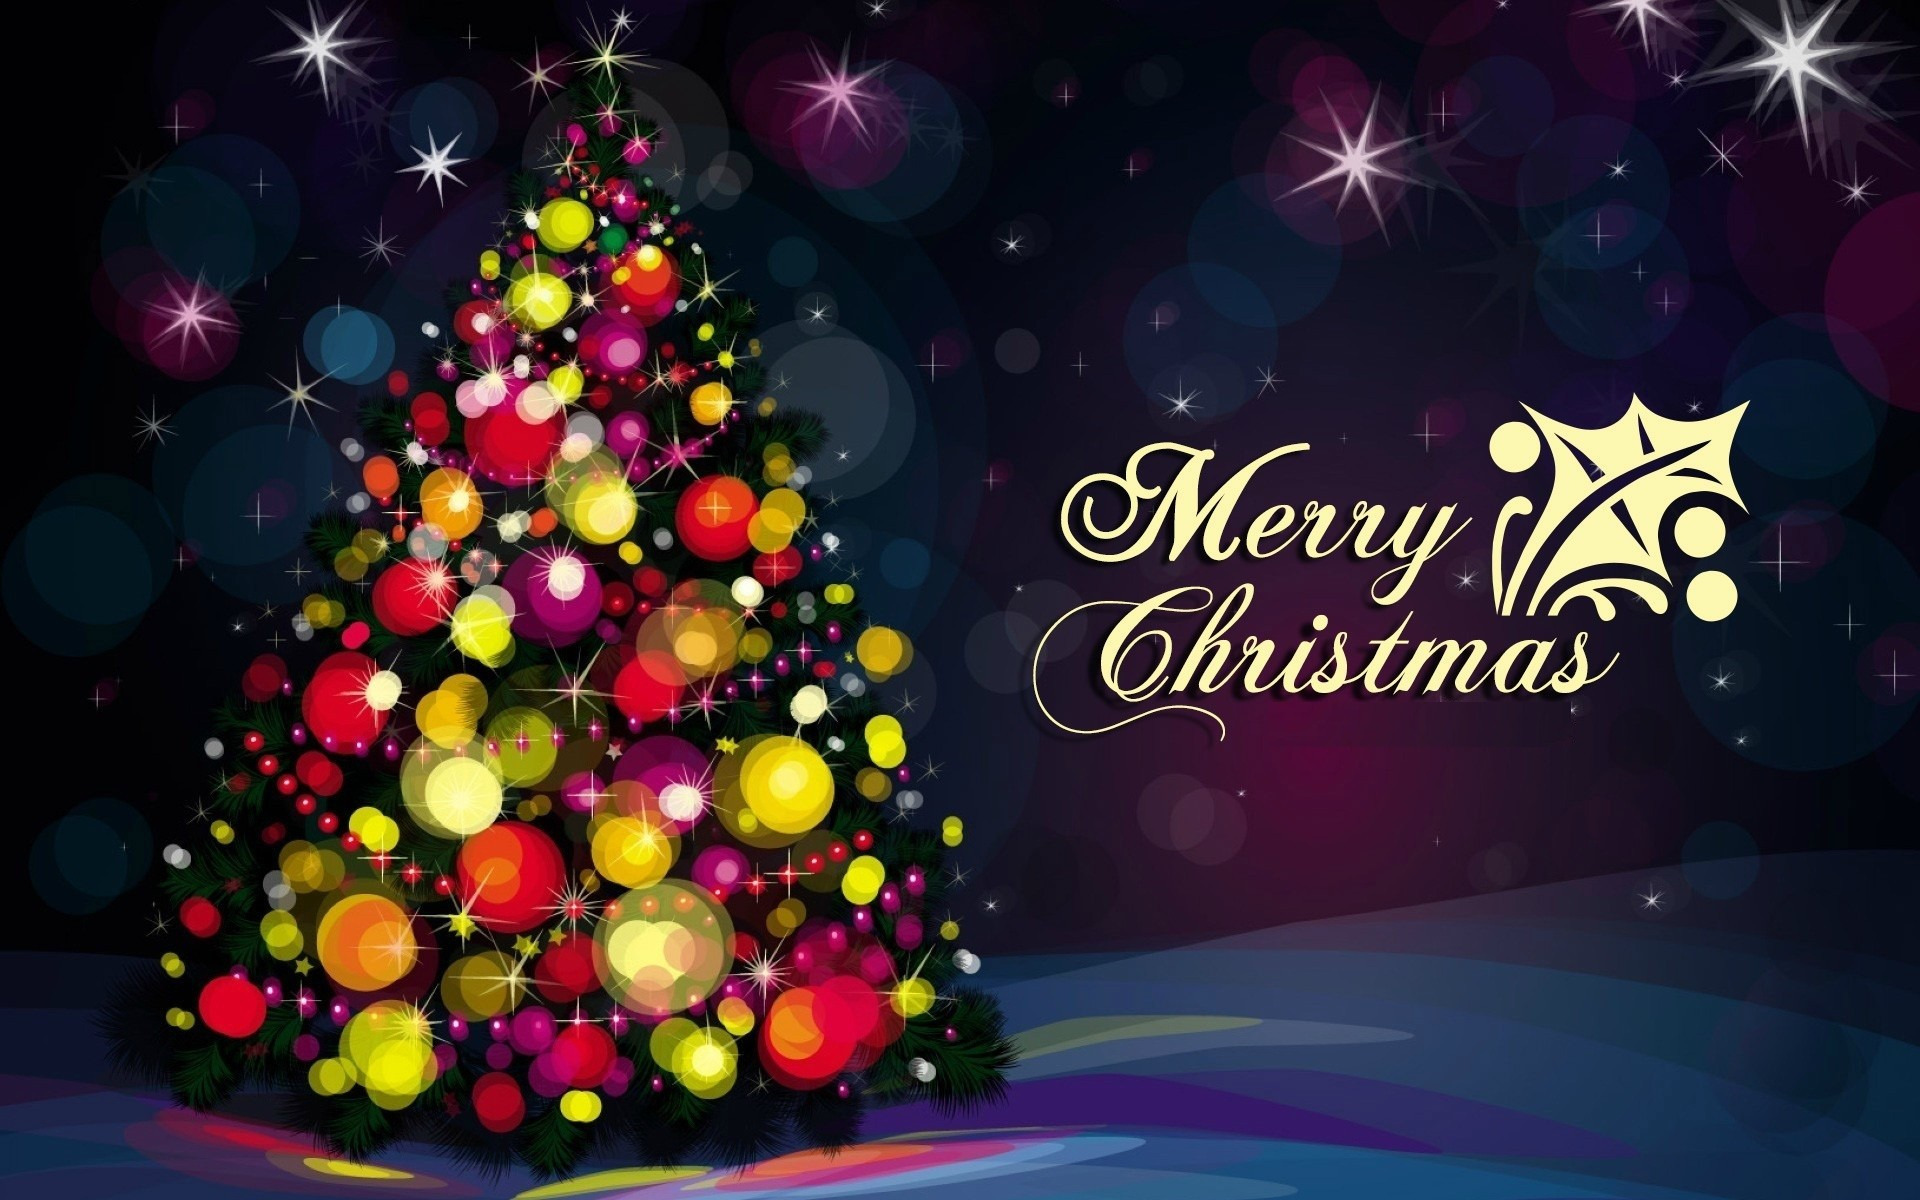 Merry Christmas Celebration Wallpapers Free.